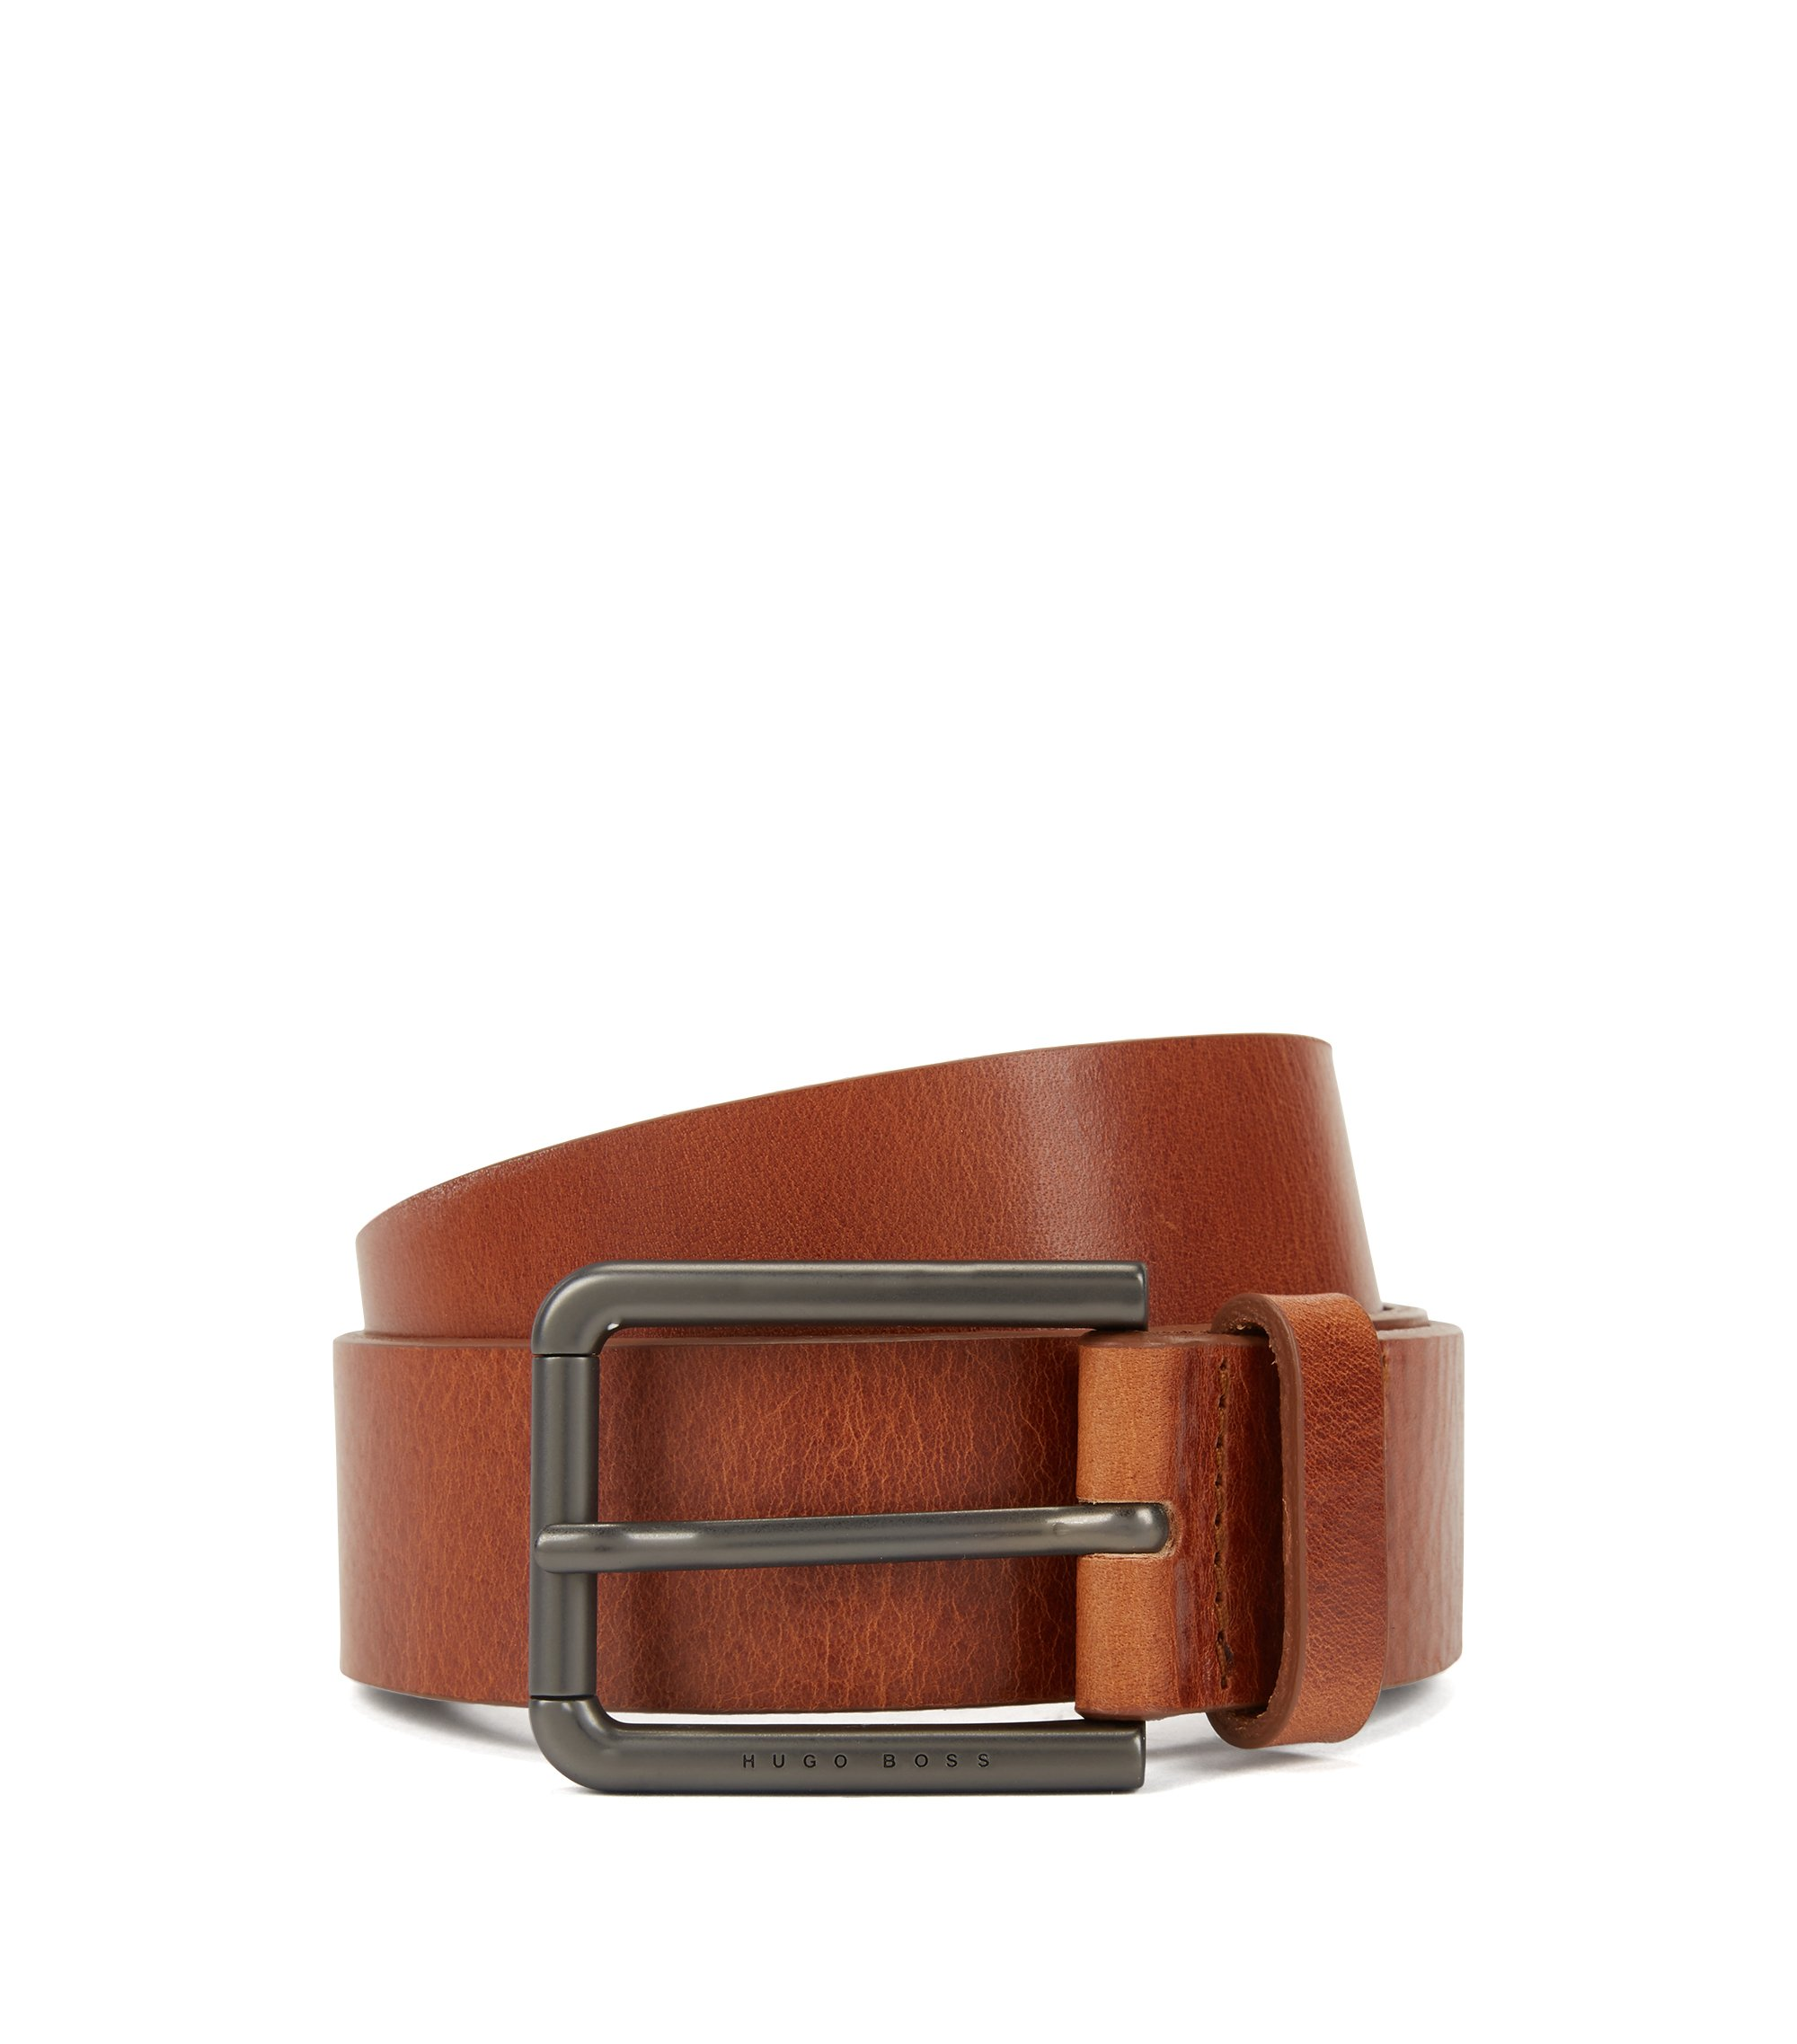 Italian leather belt with gunmetal roller buckle, Brown